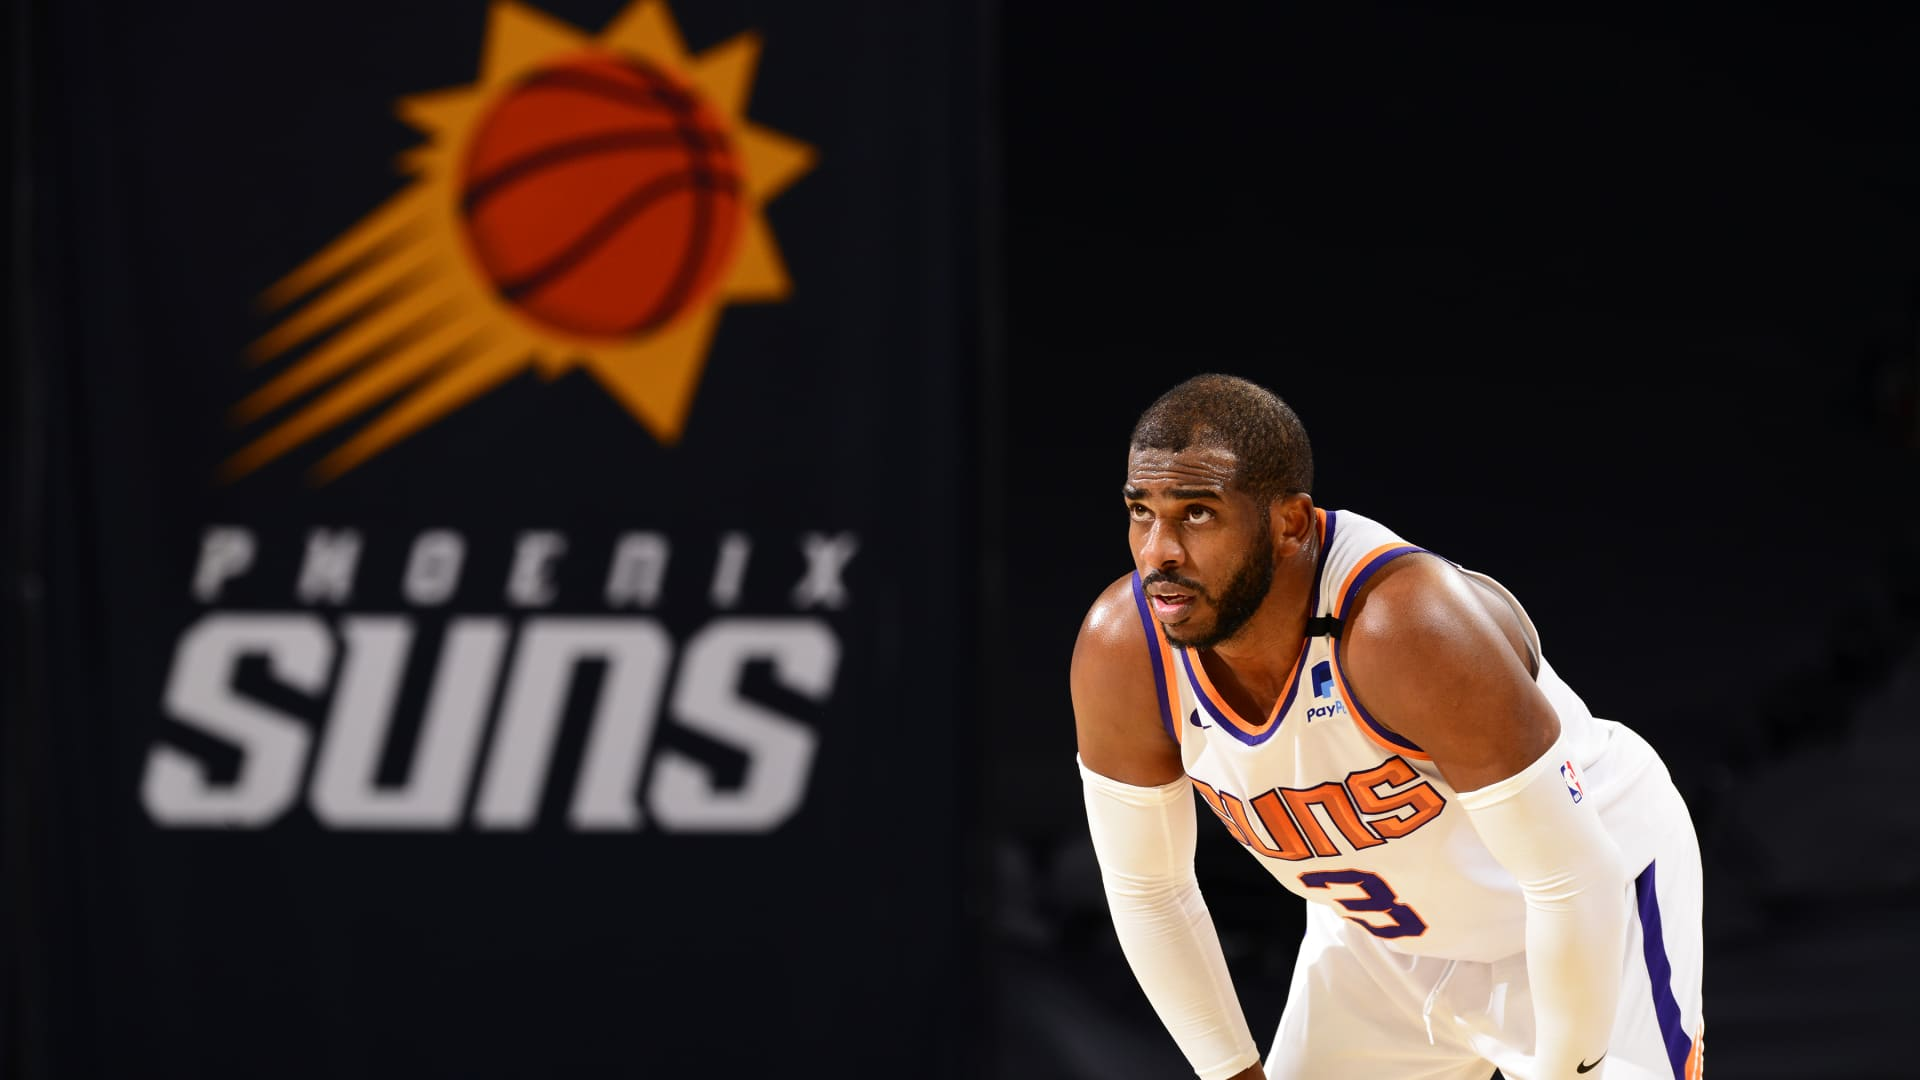 Chris Paul #3 of the Phoenix Suns looks on during the game against the Oklahoma City Thunder on January 27, 2021 at Talking Stick Resort Arena in Phoenix, Arizona.